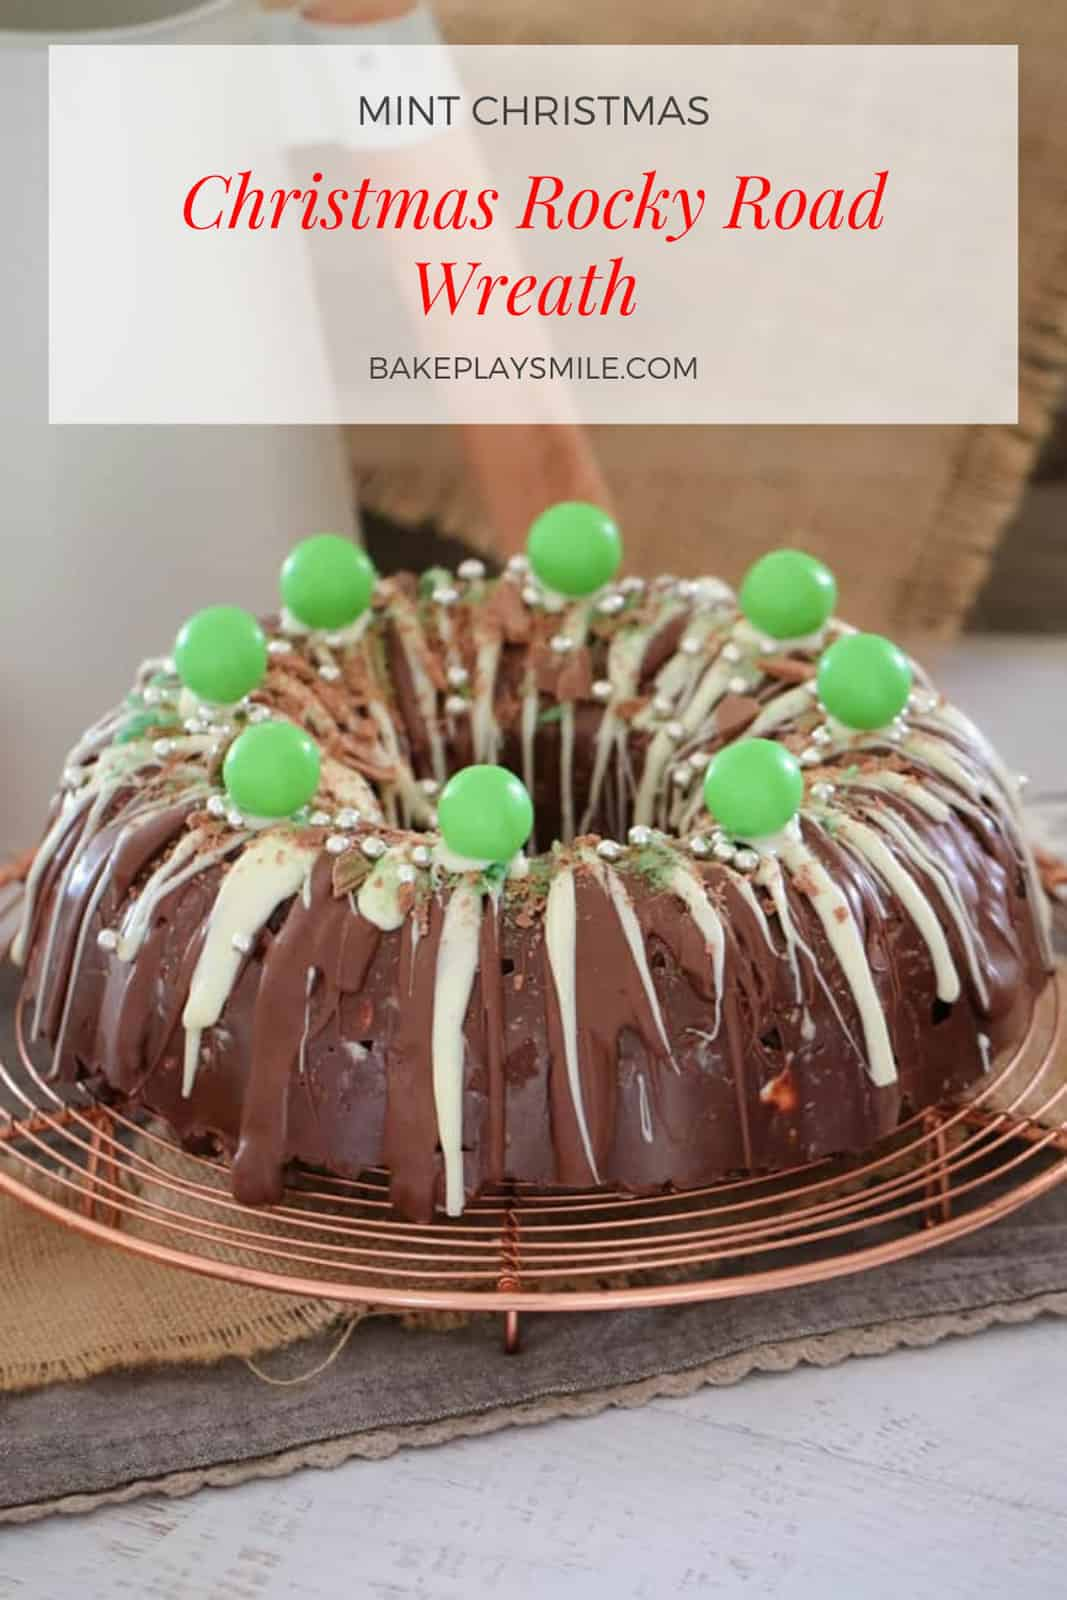 A decorated Mint Rocky Road Christmas Wreath with white and milk chocolate drizzled over, placed on a round copper wire tray